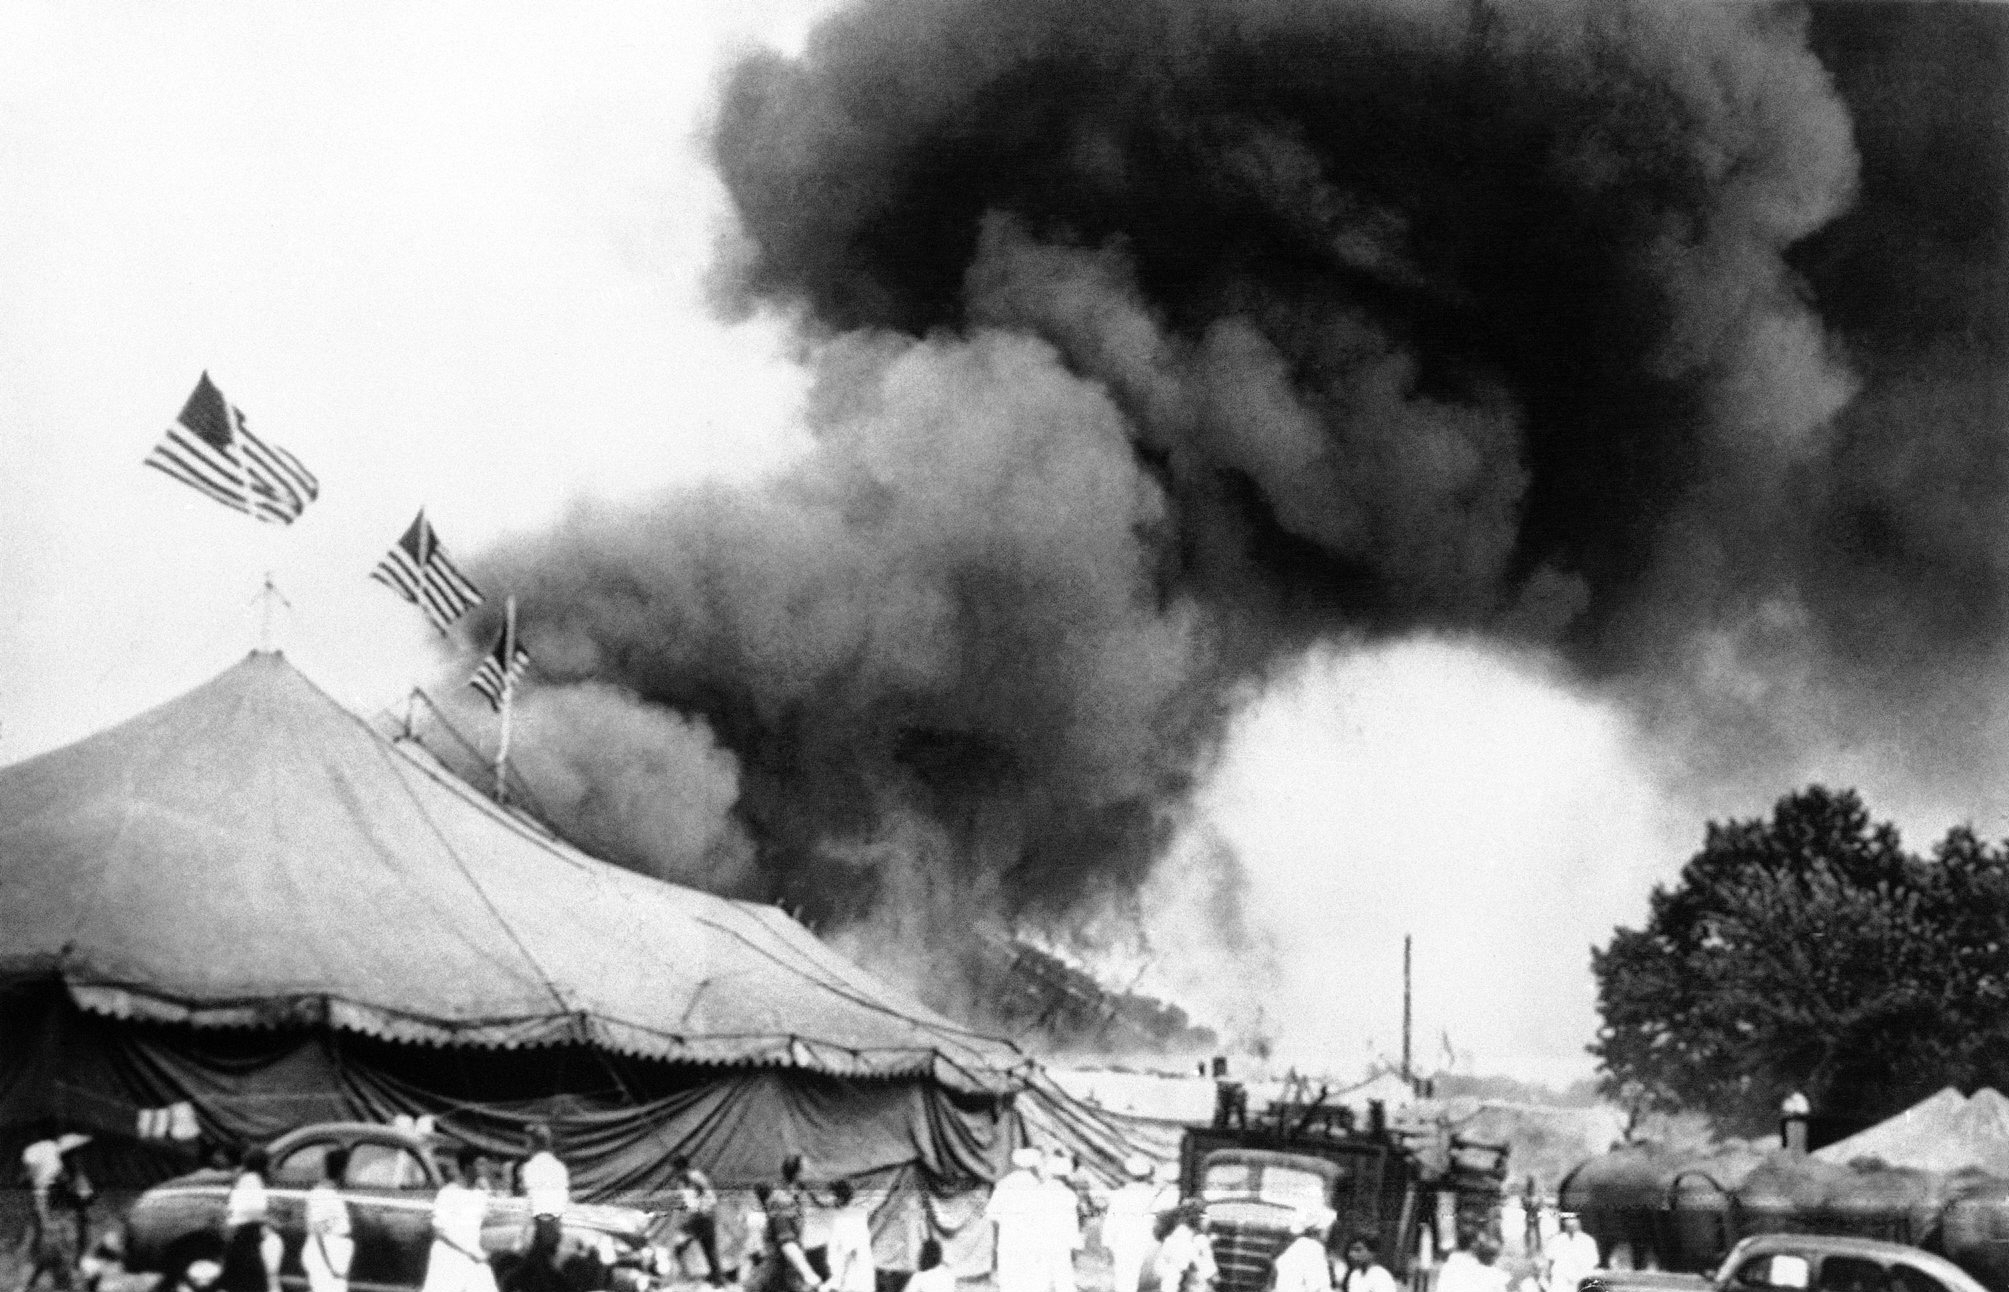 Flames shoot from the top of the main tent of the Ringling Brothers Barnum and Bailey Circus in Hartford, Conn., on July 6, 1944.